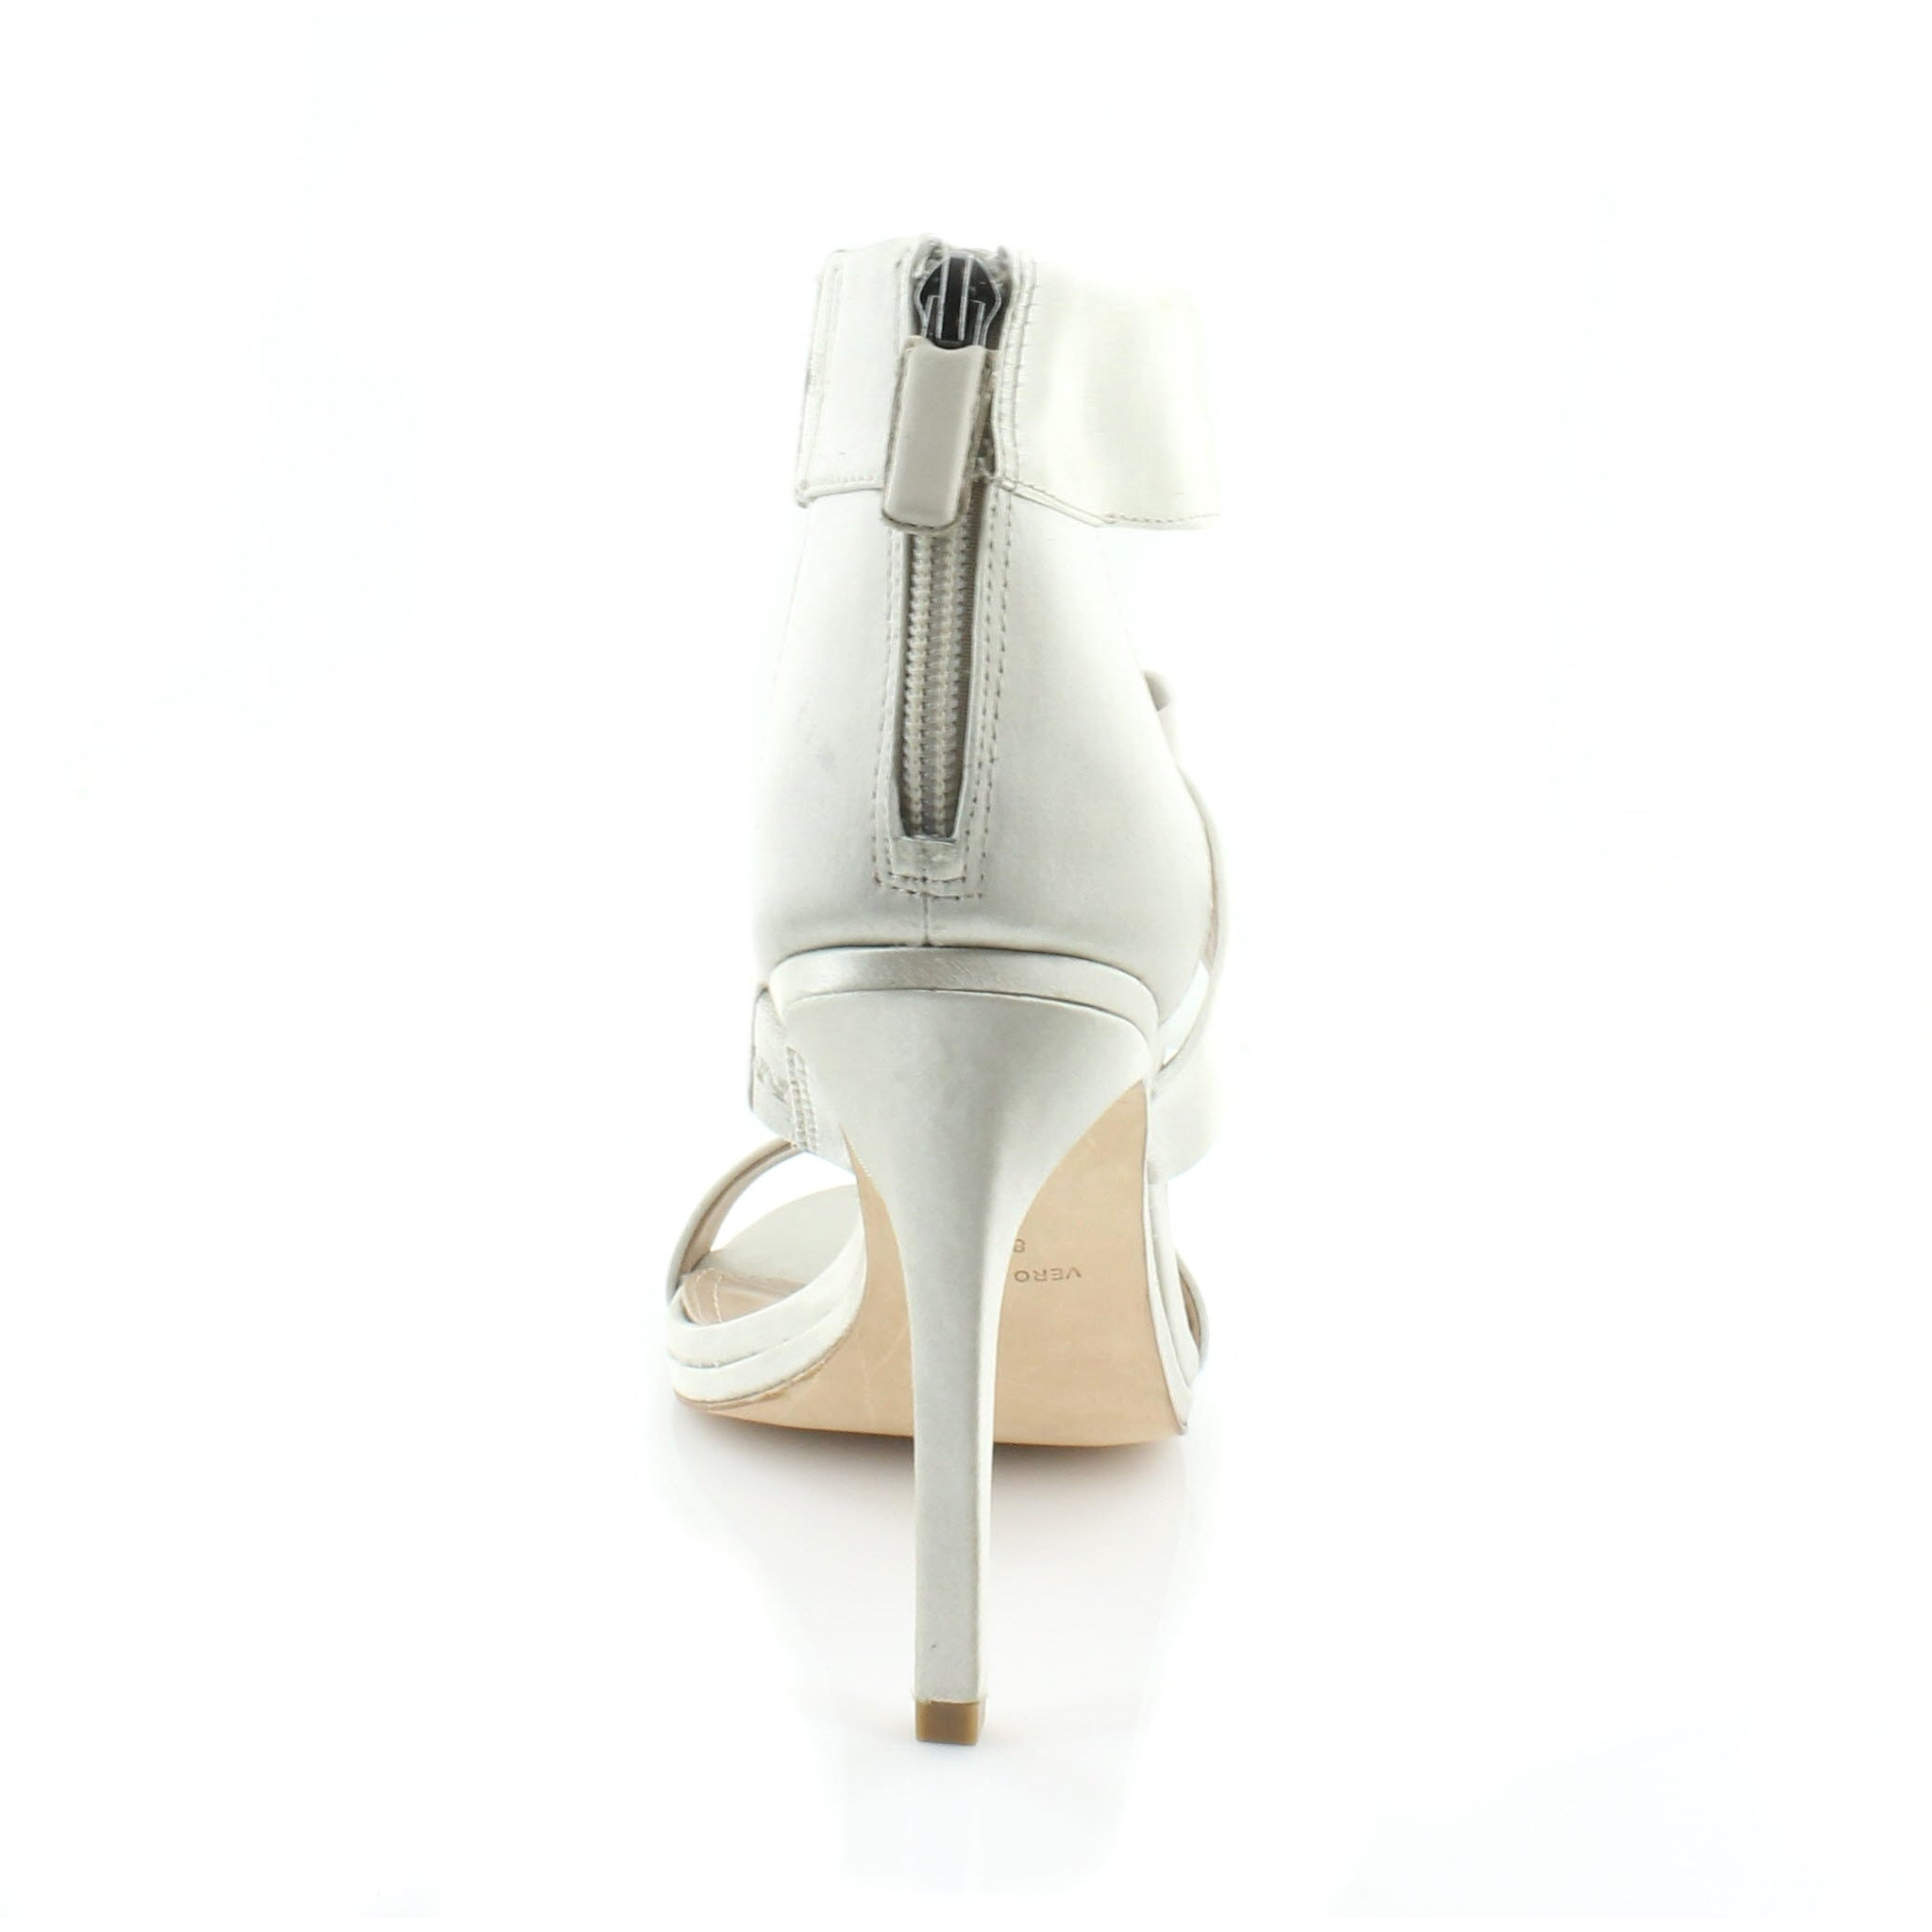 71bde36f5702e Shop BCBGmaxazria Gale Women s Heels Alabaster Pink - Free Shipping On  Orders Over  45 - Overstock.com - 19978044